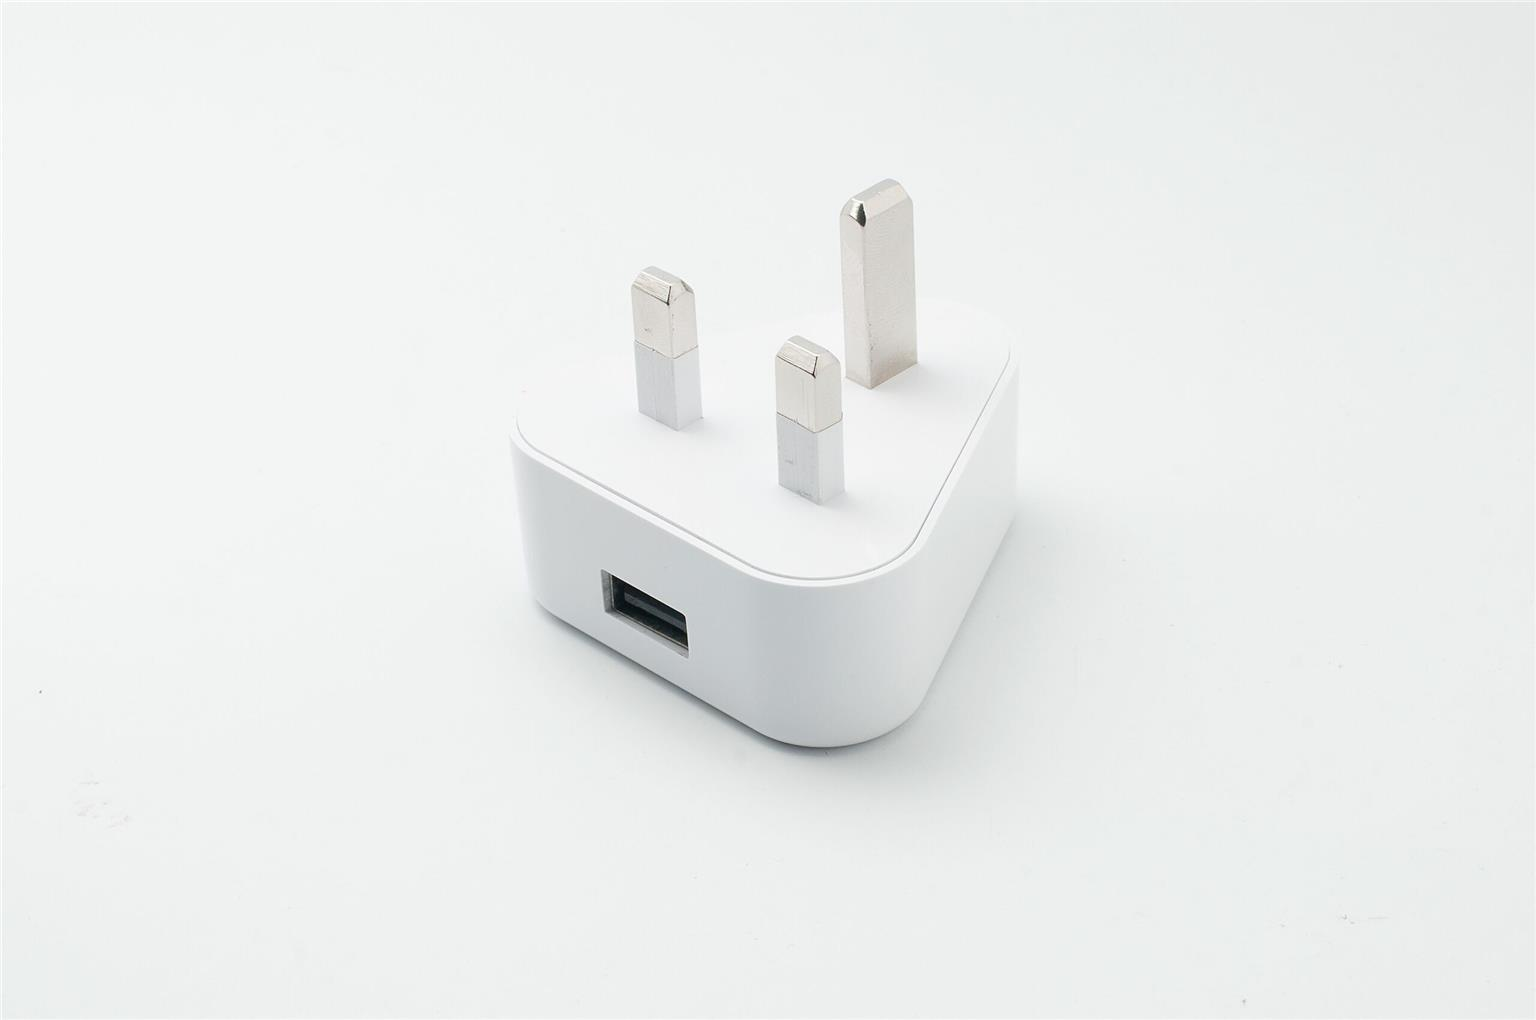 Apple 5W USB Power Adapter Charger with Lightning USB Cable for Apple